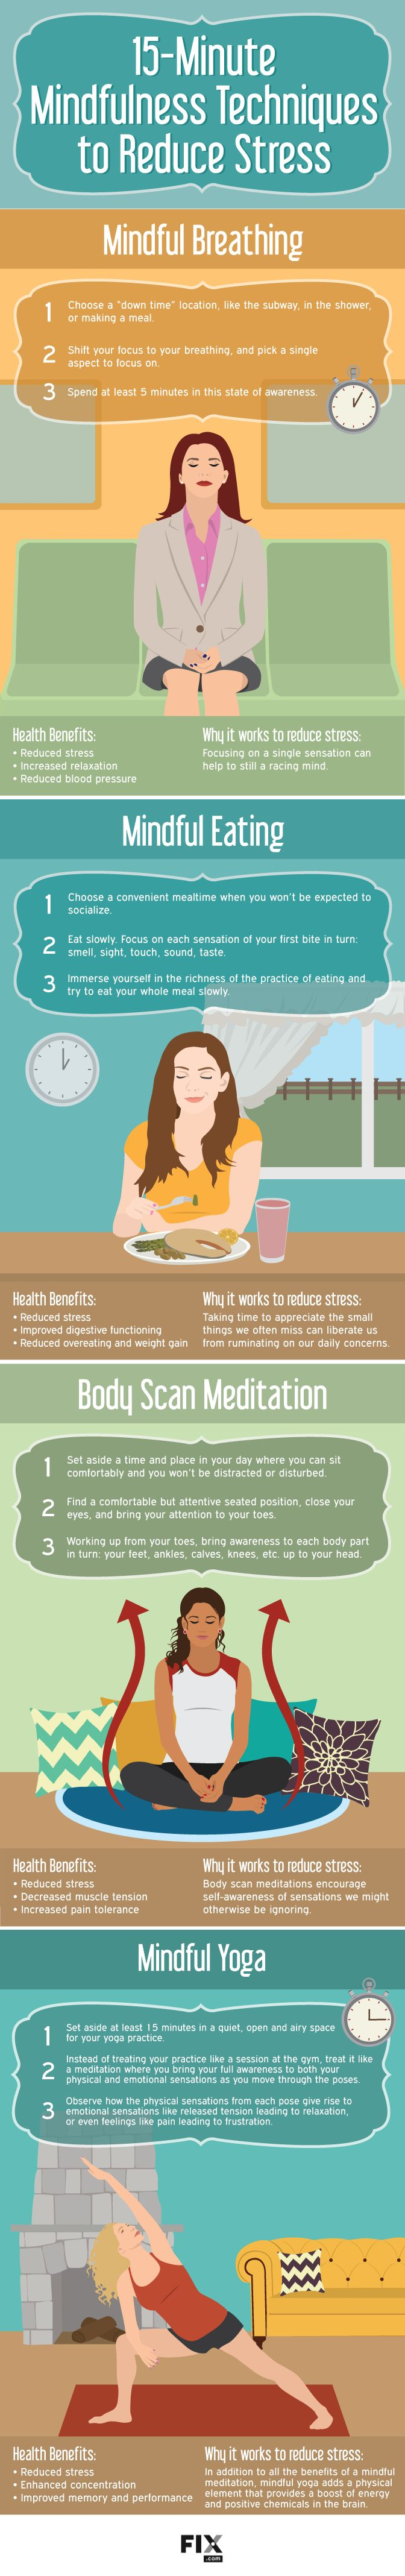 Taking a few moments everyday to reflect can reduce stress and increase quality of life! Here are 5 mindfulness tips to reduce anxiety and improve health & well being.